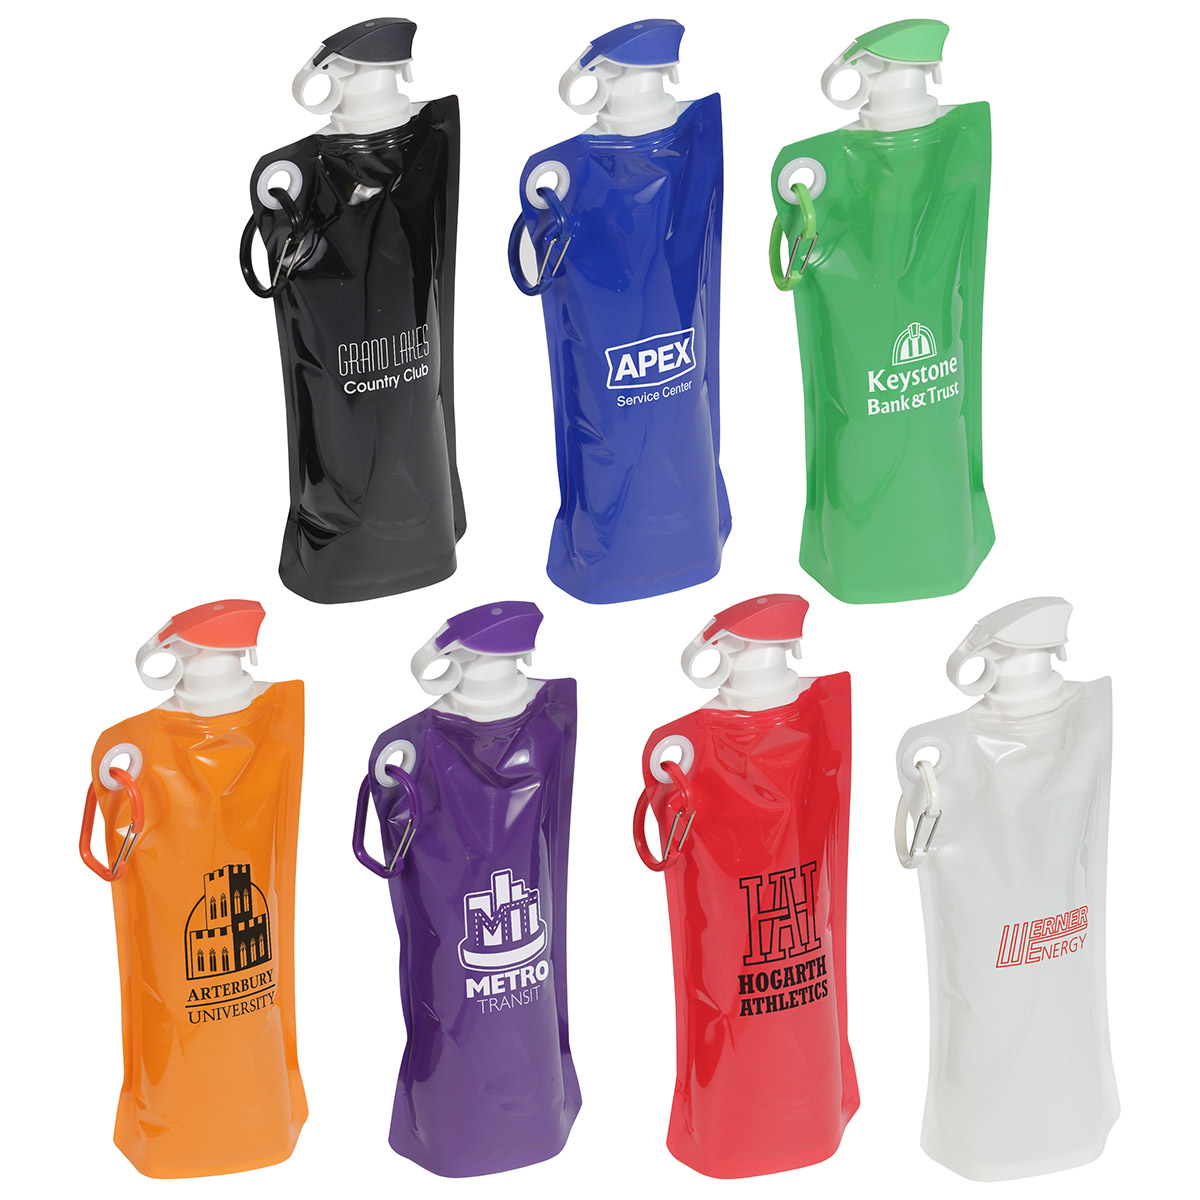 Flip Top Folding Water Bottle, WKA-FT15 - 1 Colour Imprint